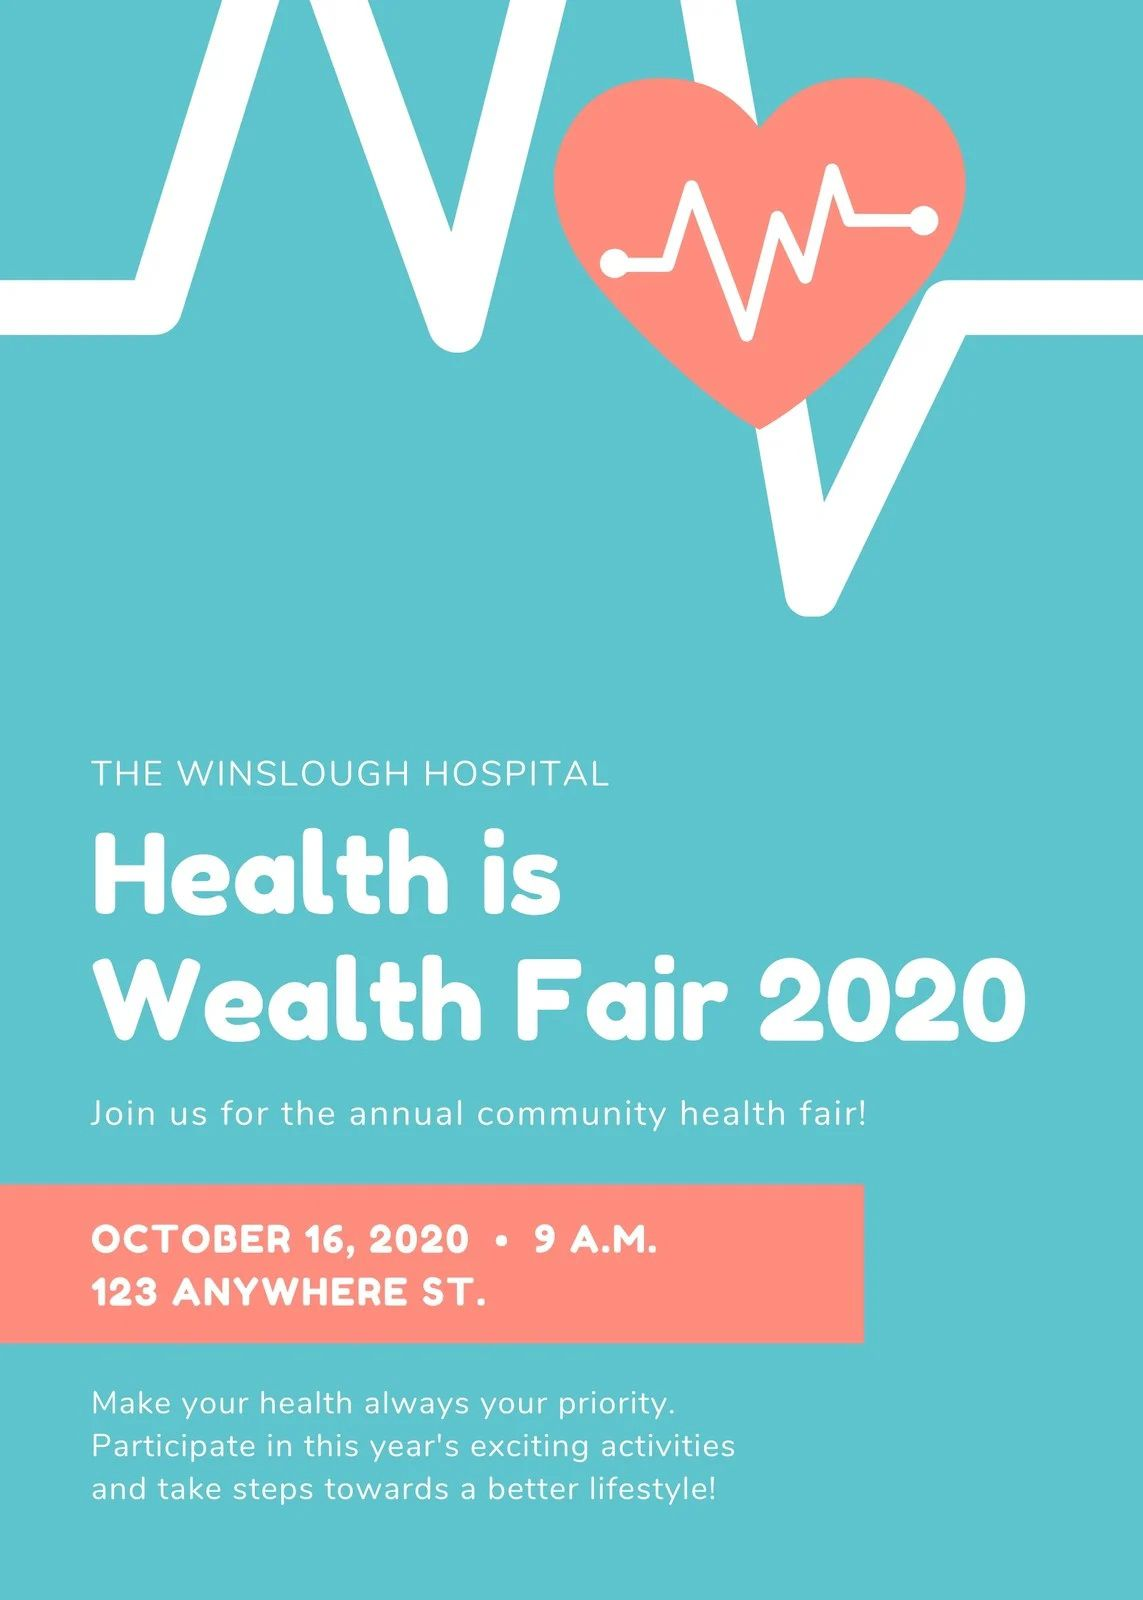 005 Fearsome Health Fair Flyer Template Picture  And Wellnes WordFull